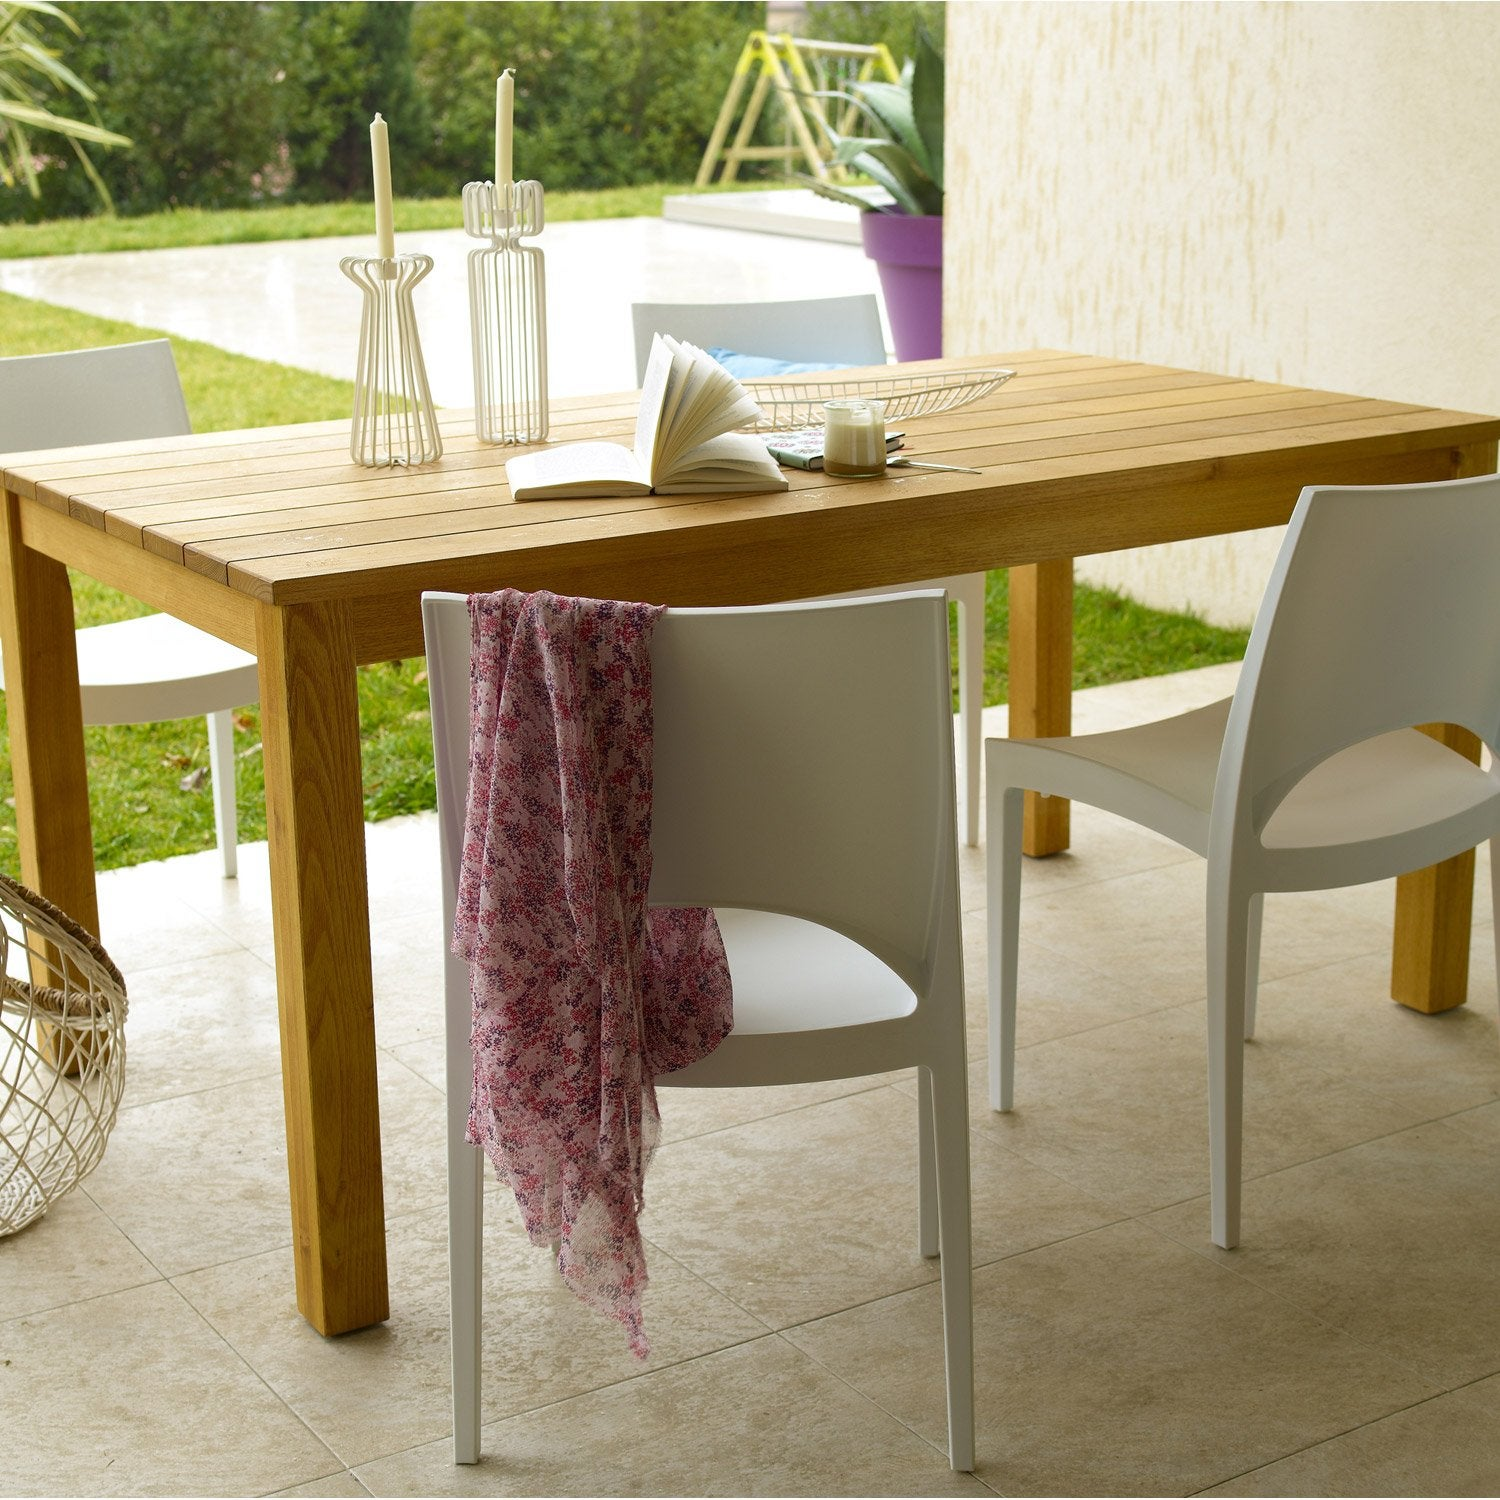 Table bois jardin leroy merlin for Table bois jardin